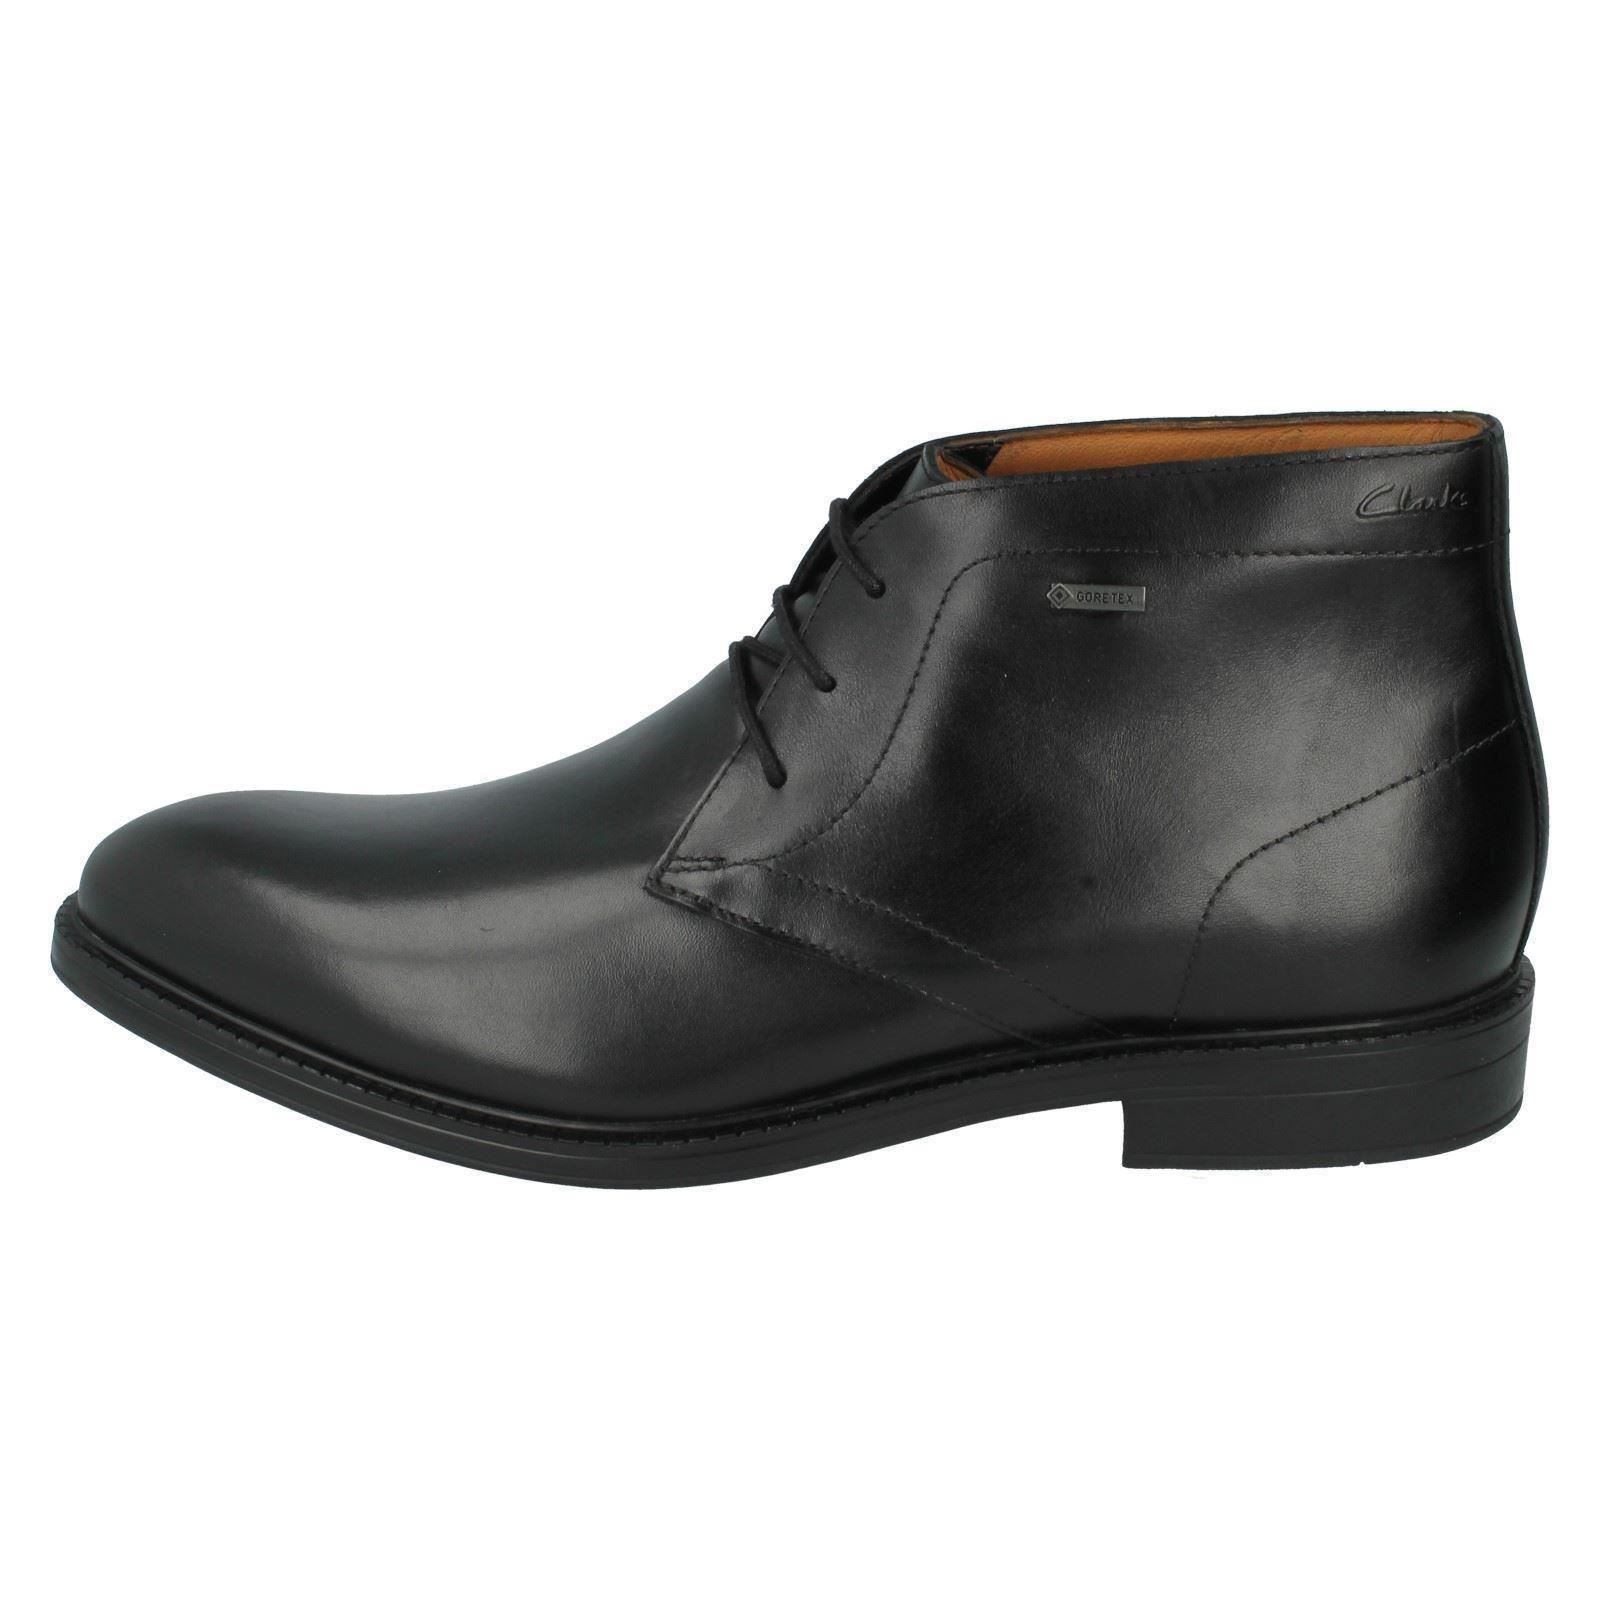 6848f7a08f73 Men s Clarks Casual Ankle Boots Chilver Hi GTX